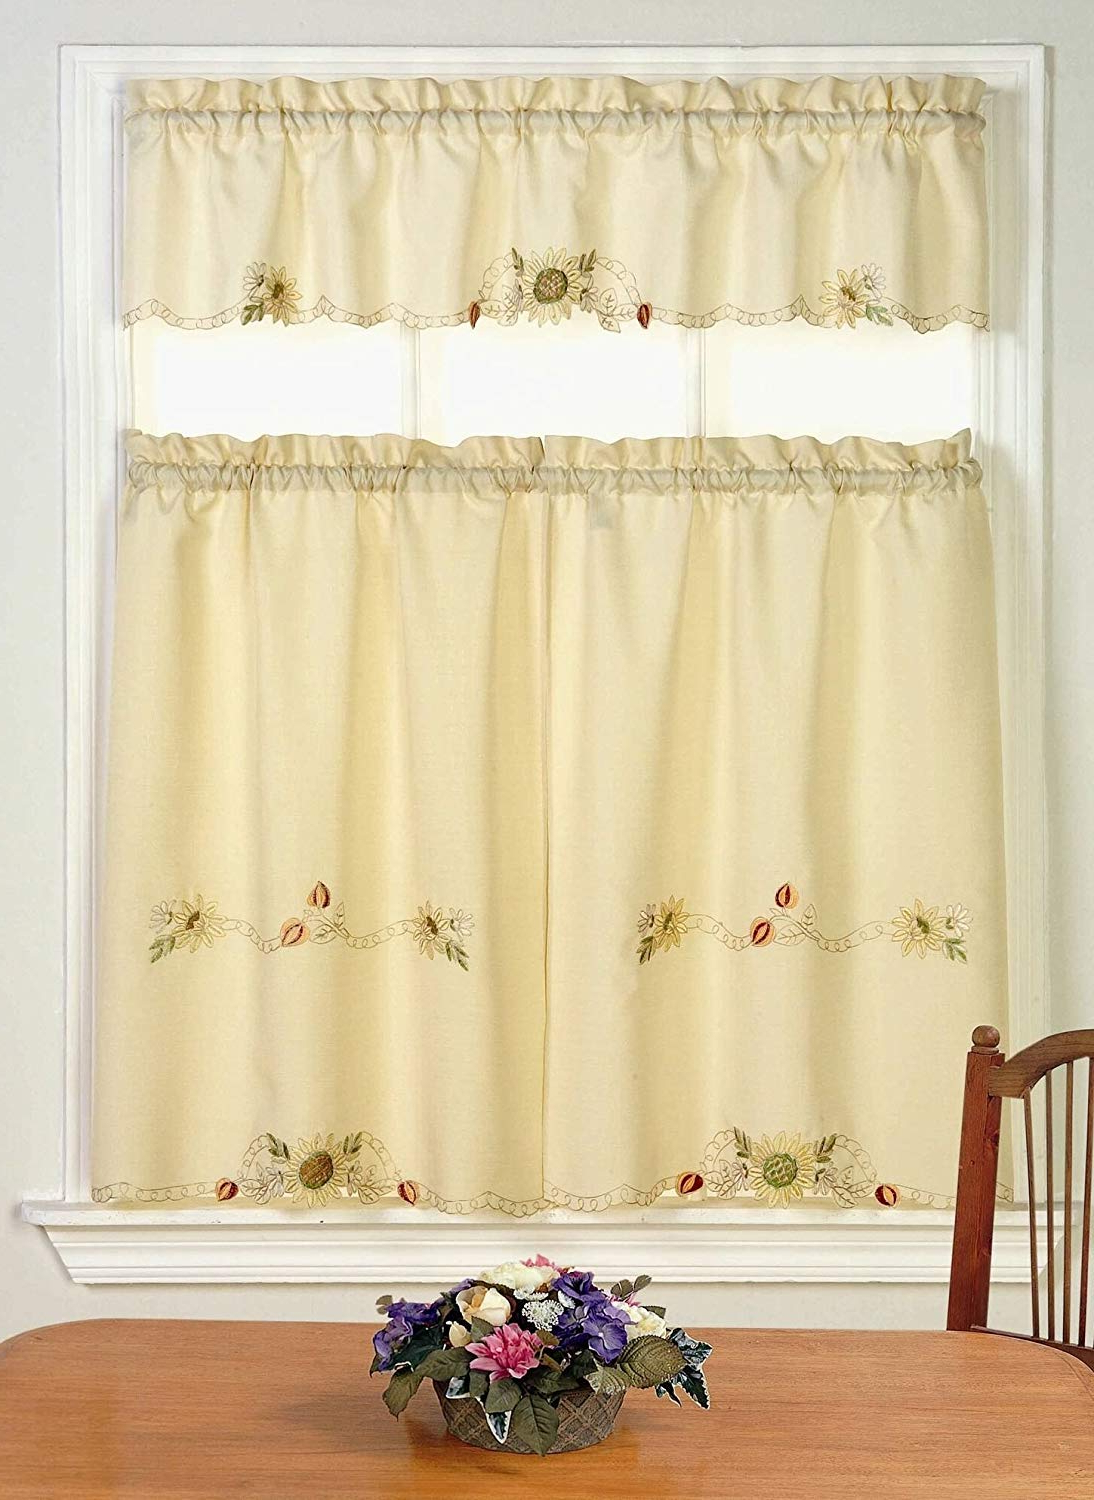 Fashionable Amazon: Ben & Jonah Simple Eleganceben&jonah For Traditional Tailored Window Curtains With Embroidered Yellow Sunflowers (View 3 of 20)